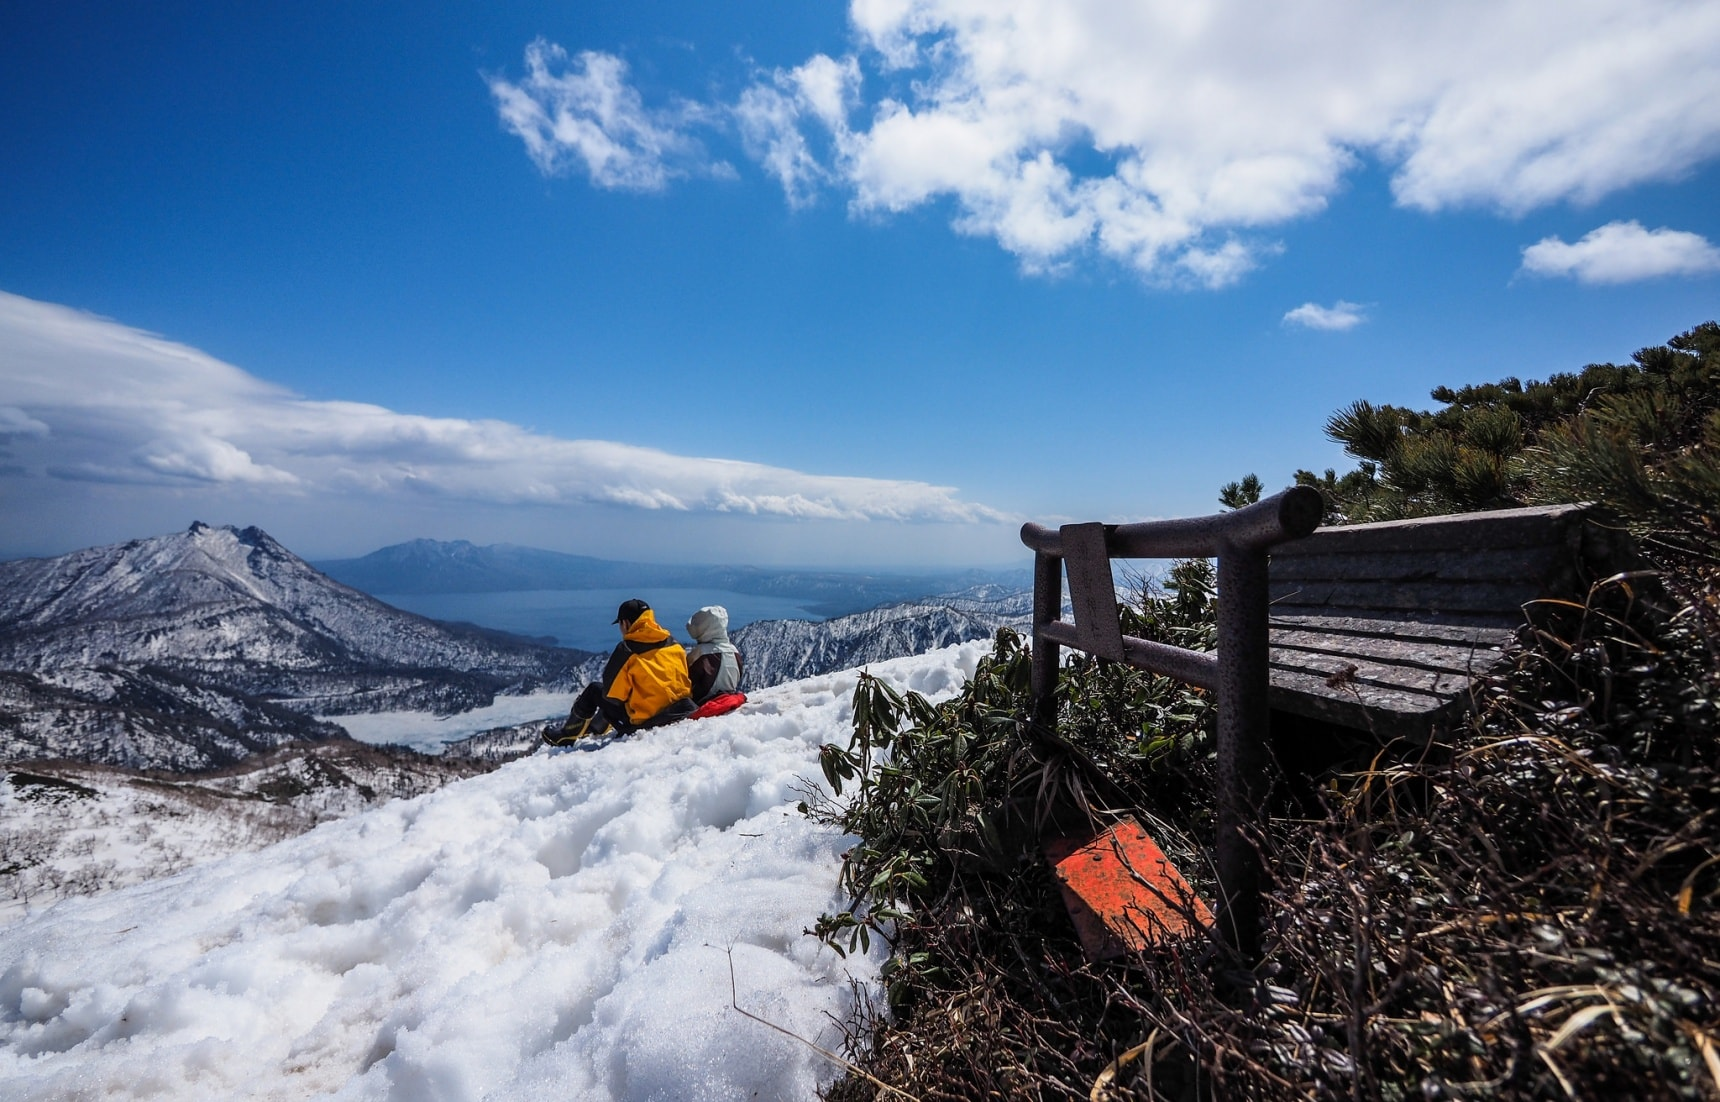 Japan's 7 Best Spring Ski Locations